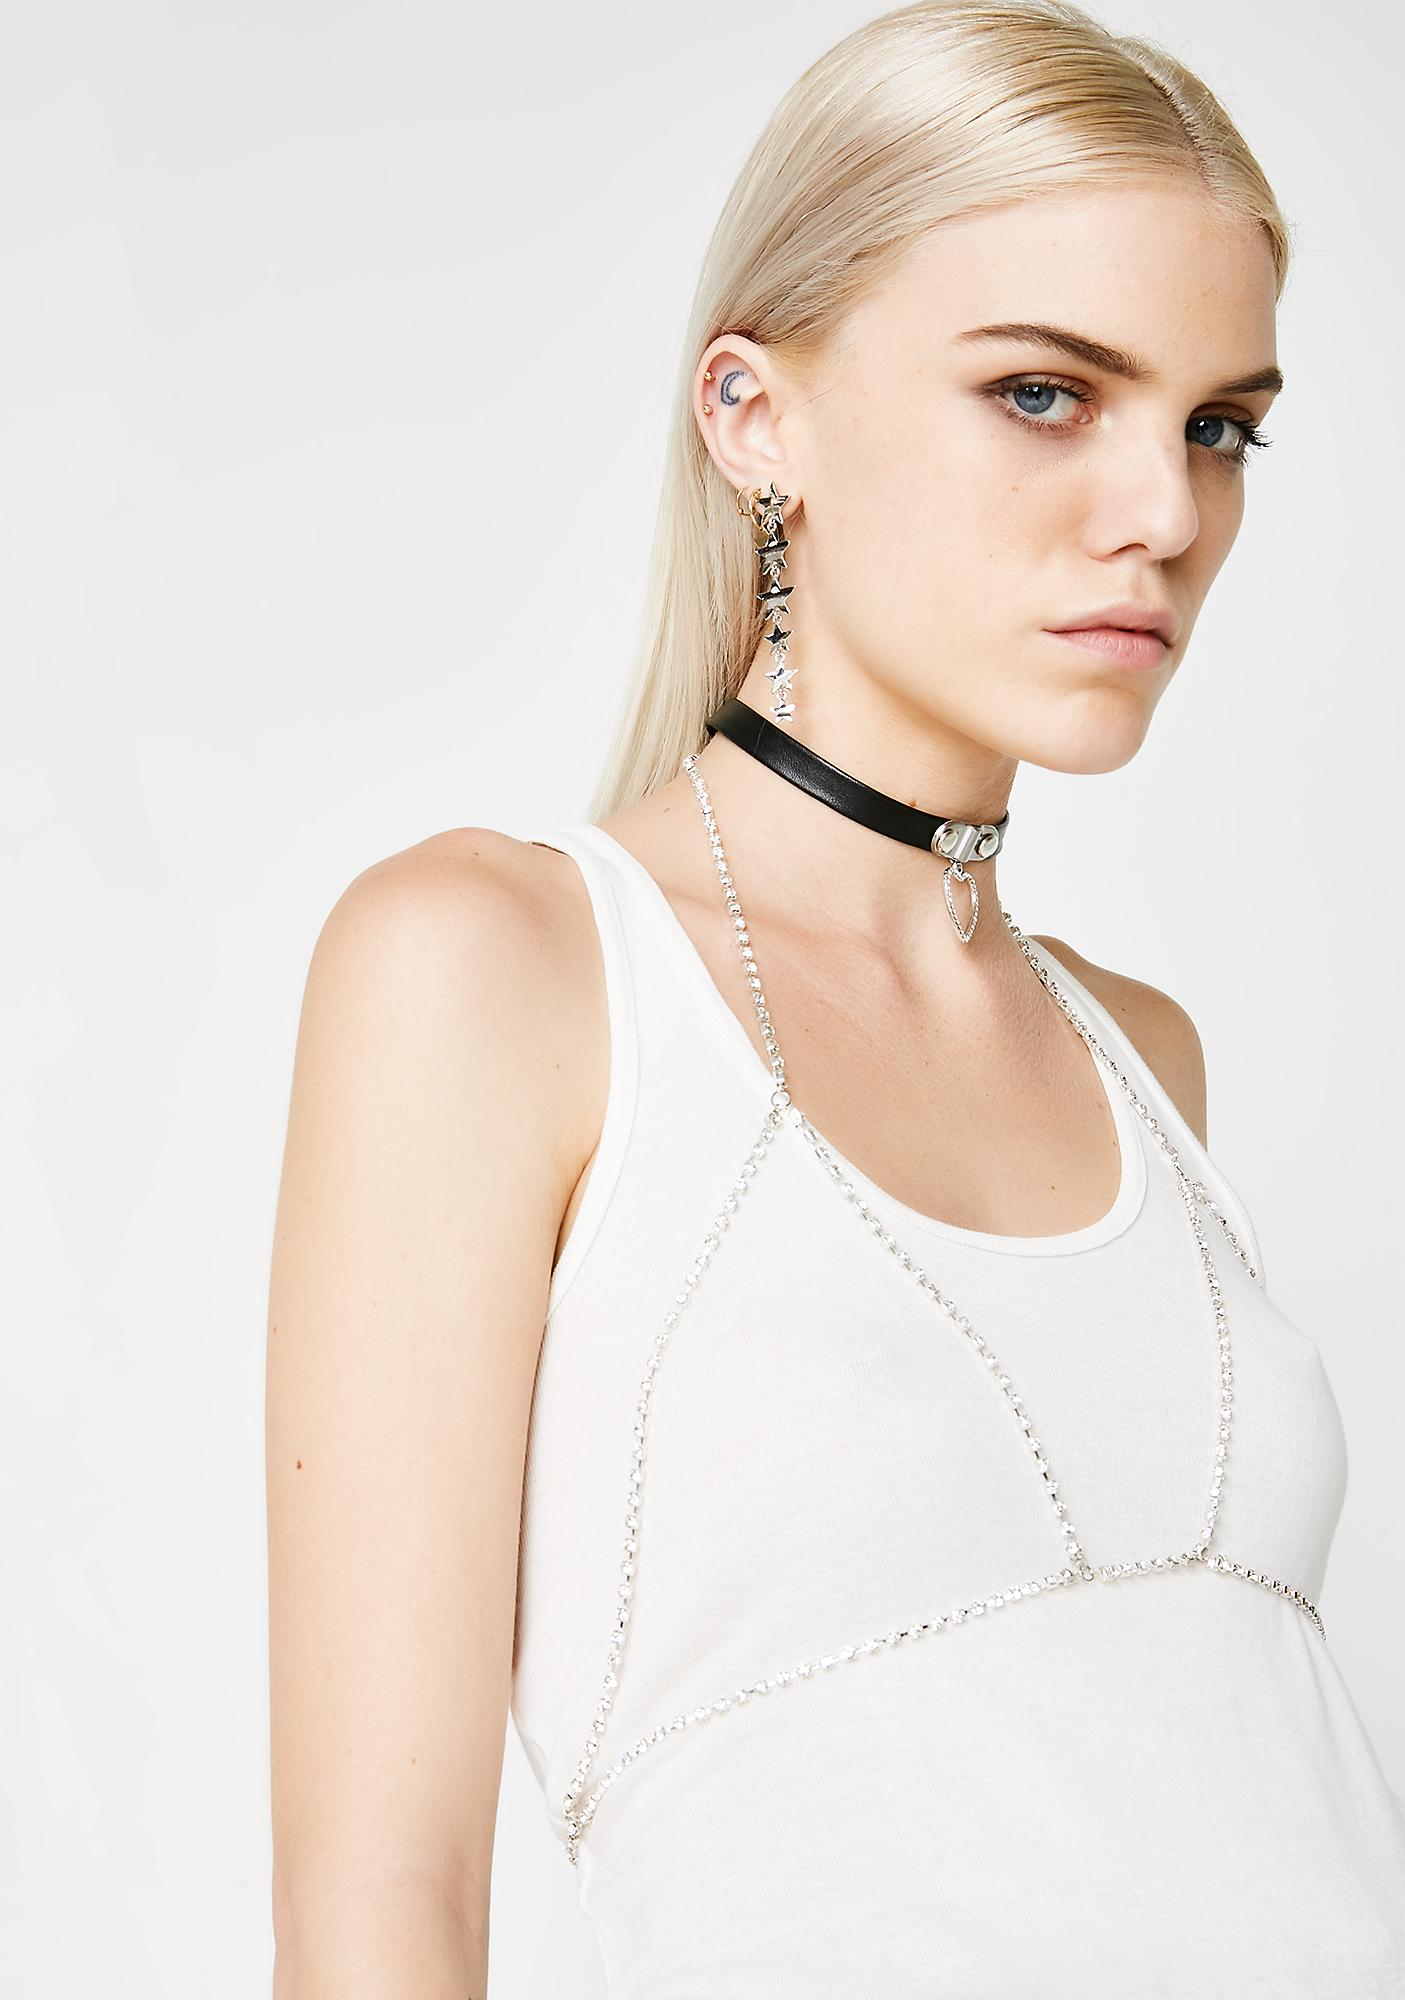 Body Language Choker And Bralette Bling